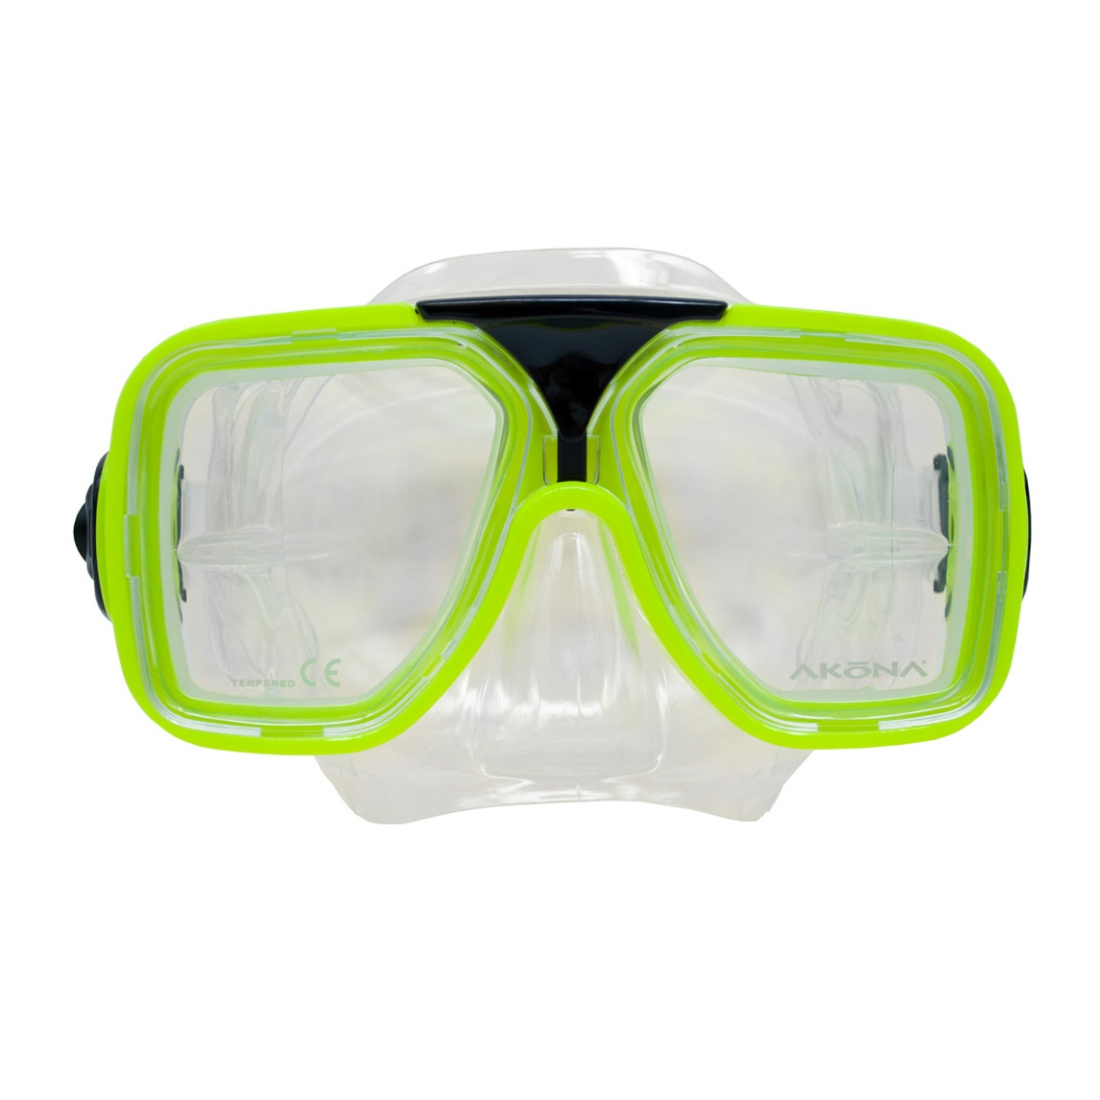 BREEZE MASK - AKM280 NY Front